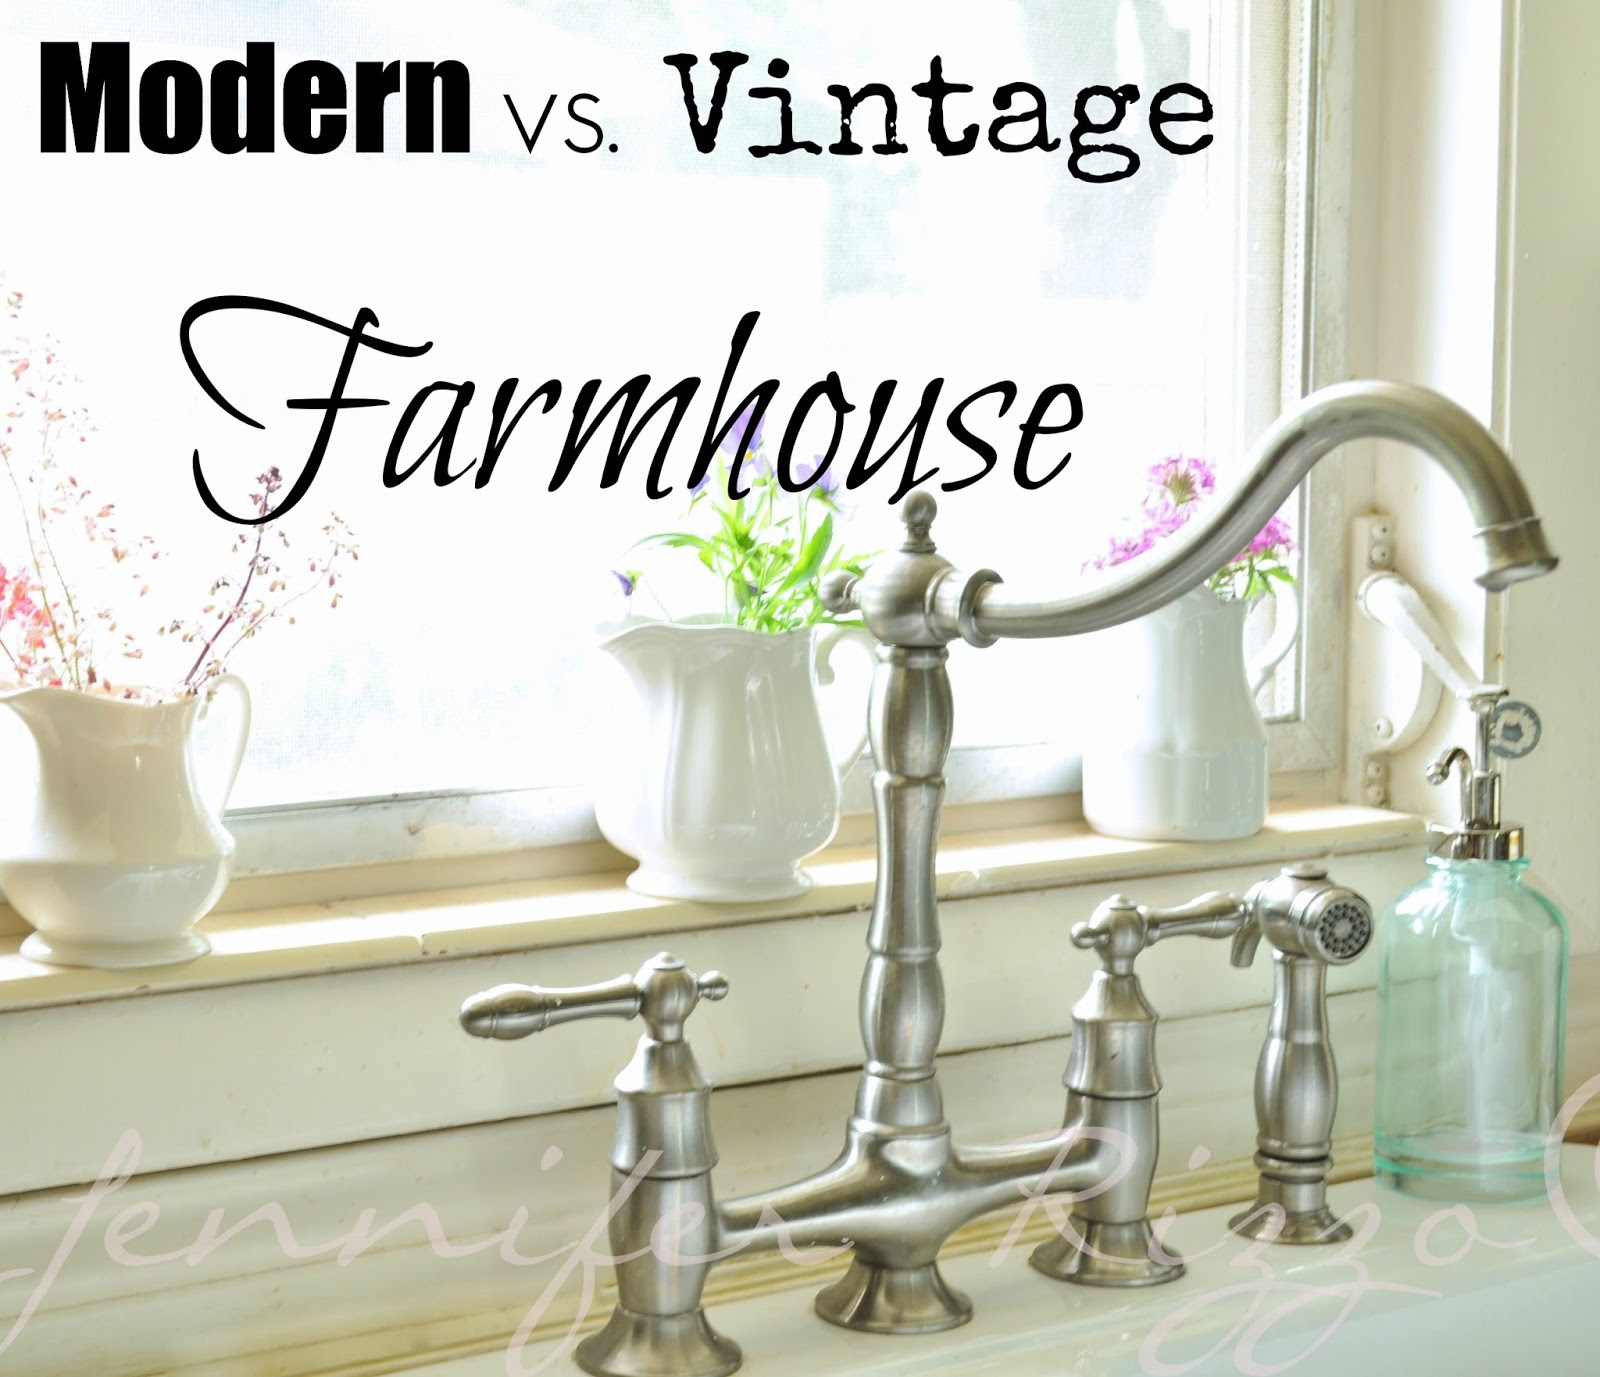 The Difference Between Modern Vs Vintage Farmhouse